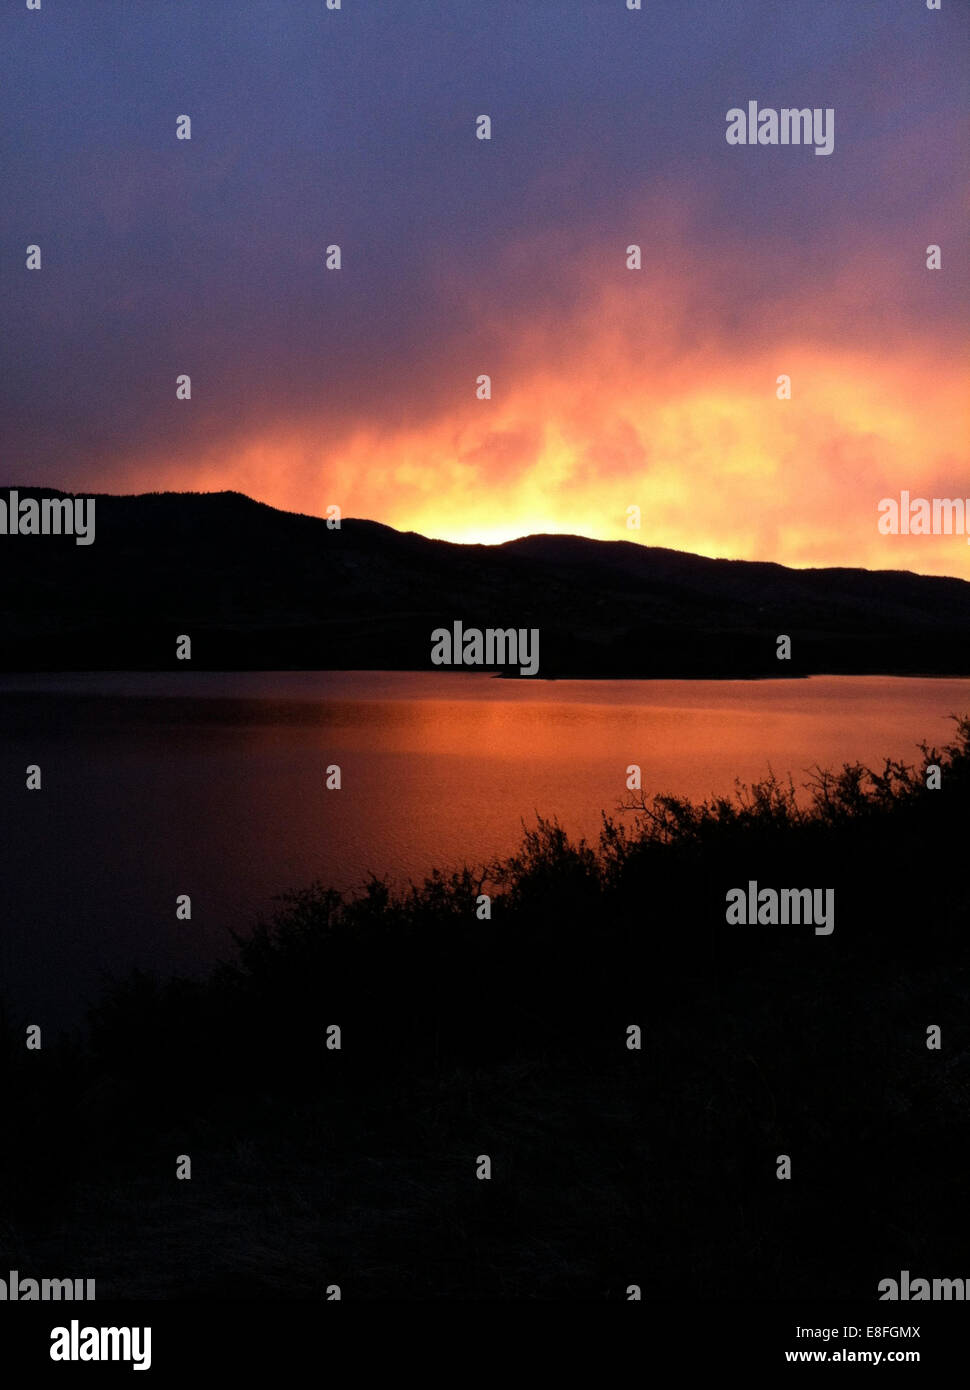 USA, Colorado, Larimer County, Fort Collins, Sunset in mountains across peaceful lake - Stock Image